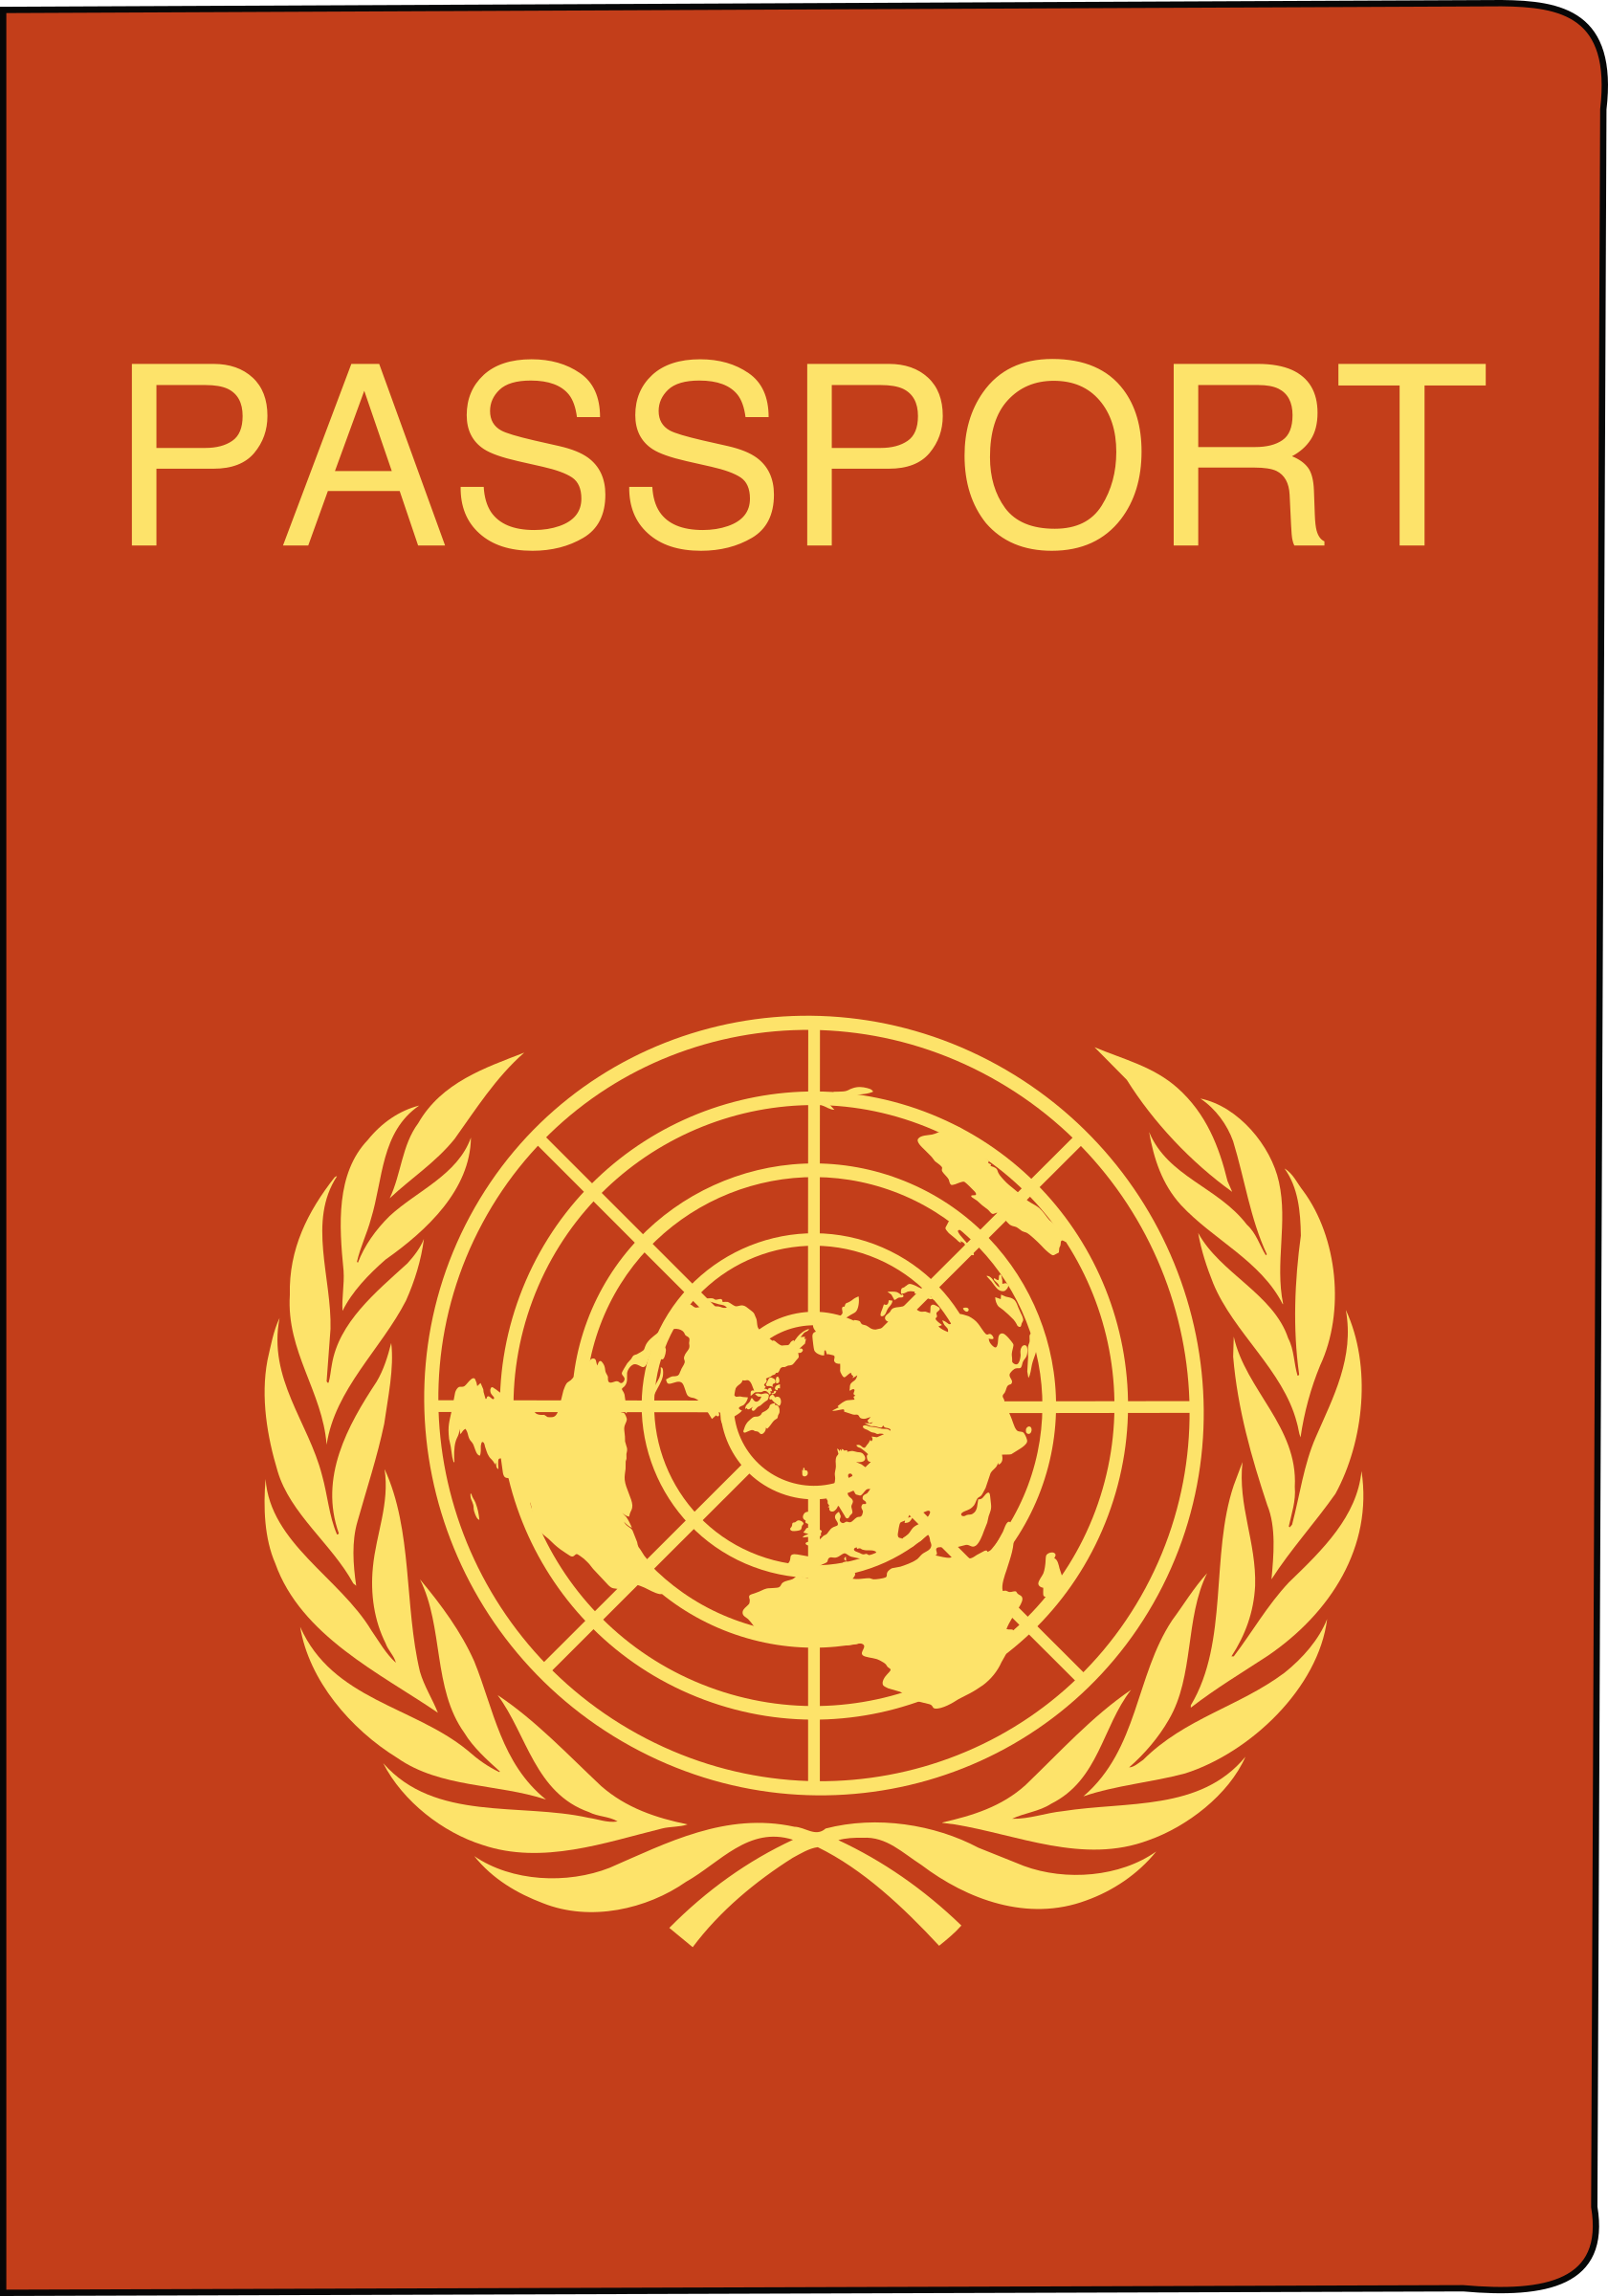 passport by sebek